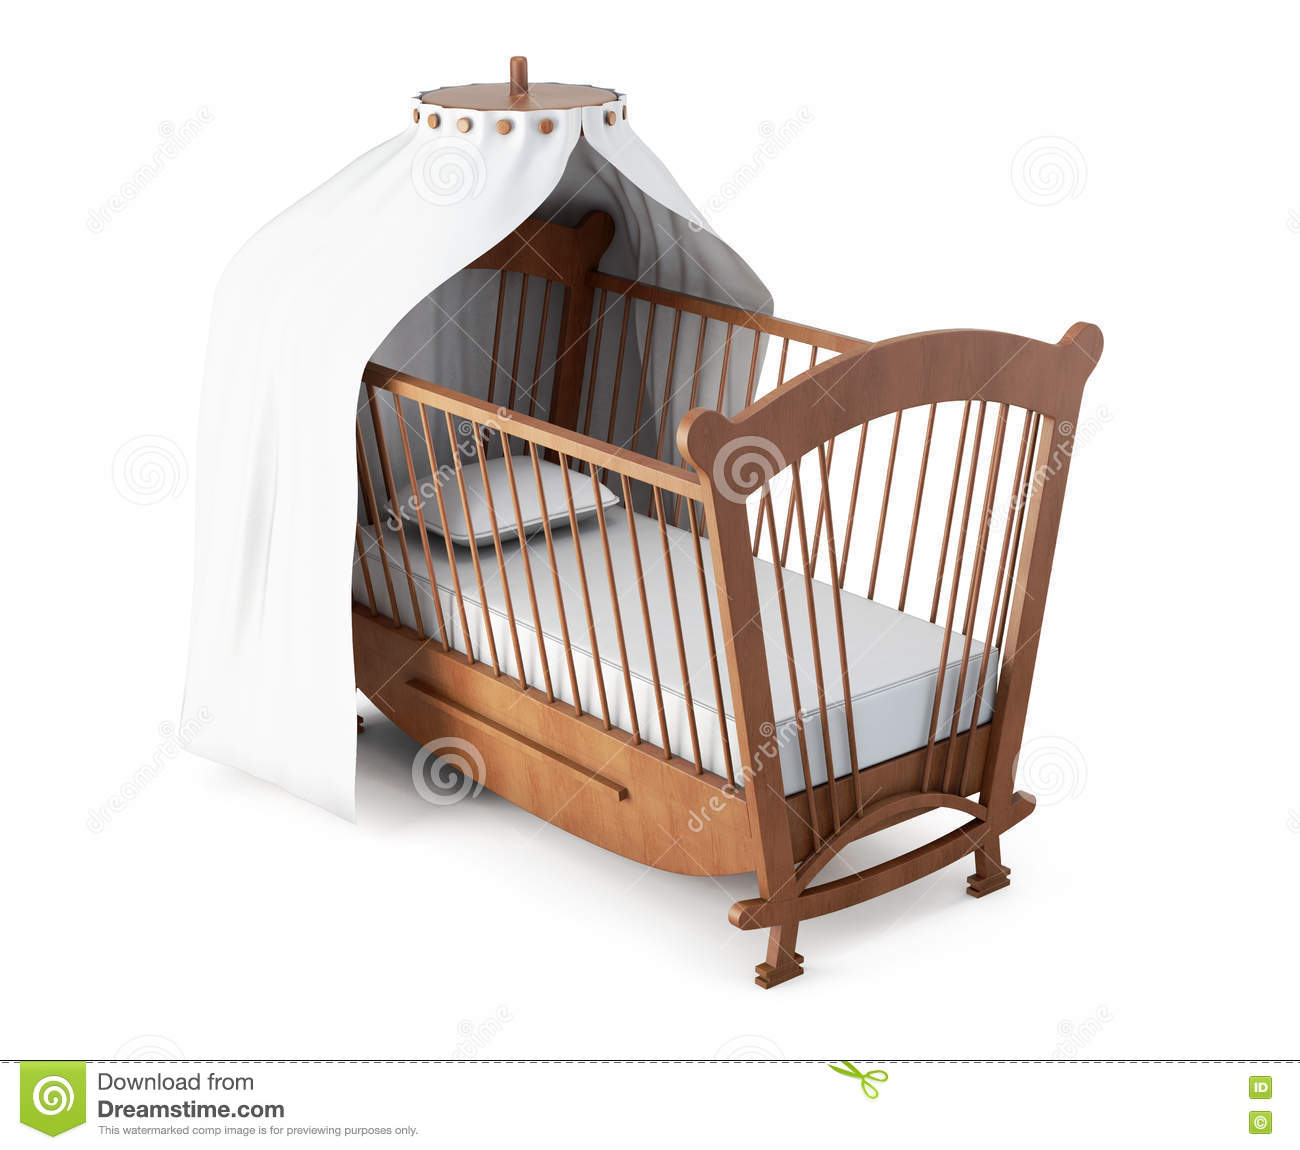 Crib with canopy on white background 3d rendering stock for White canopy crib